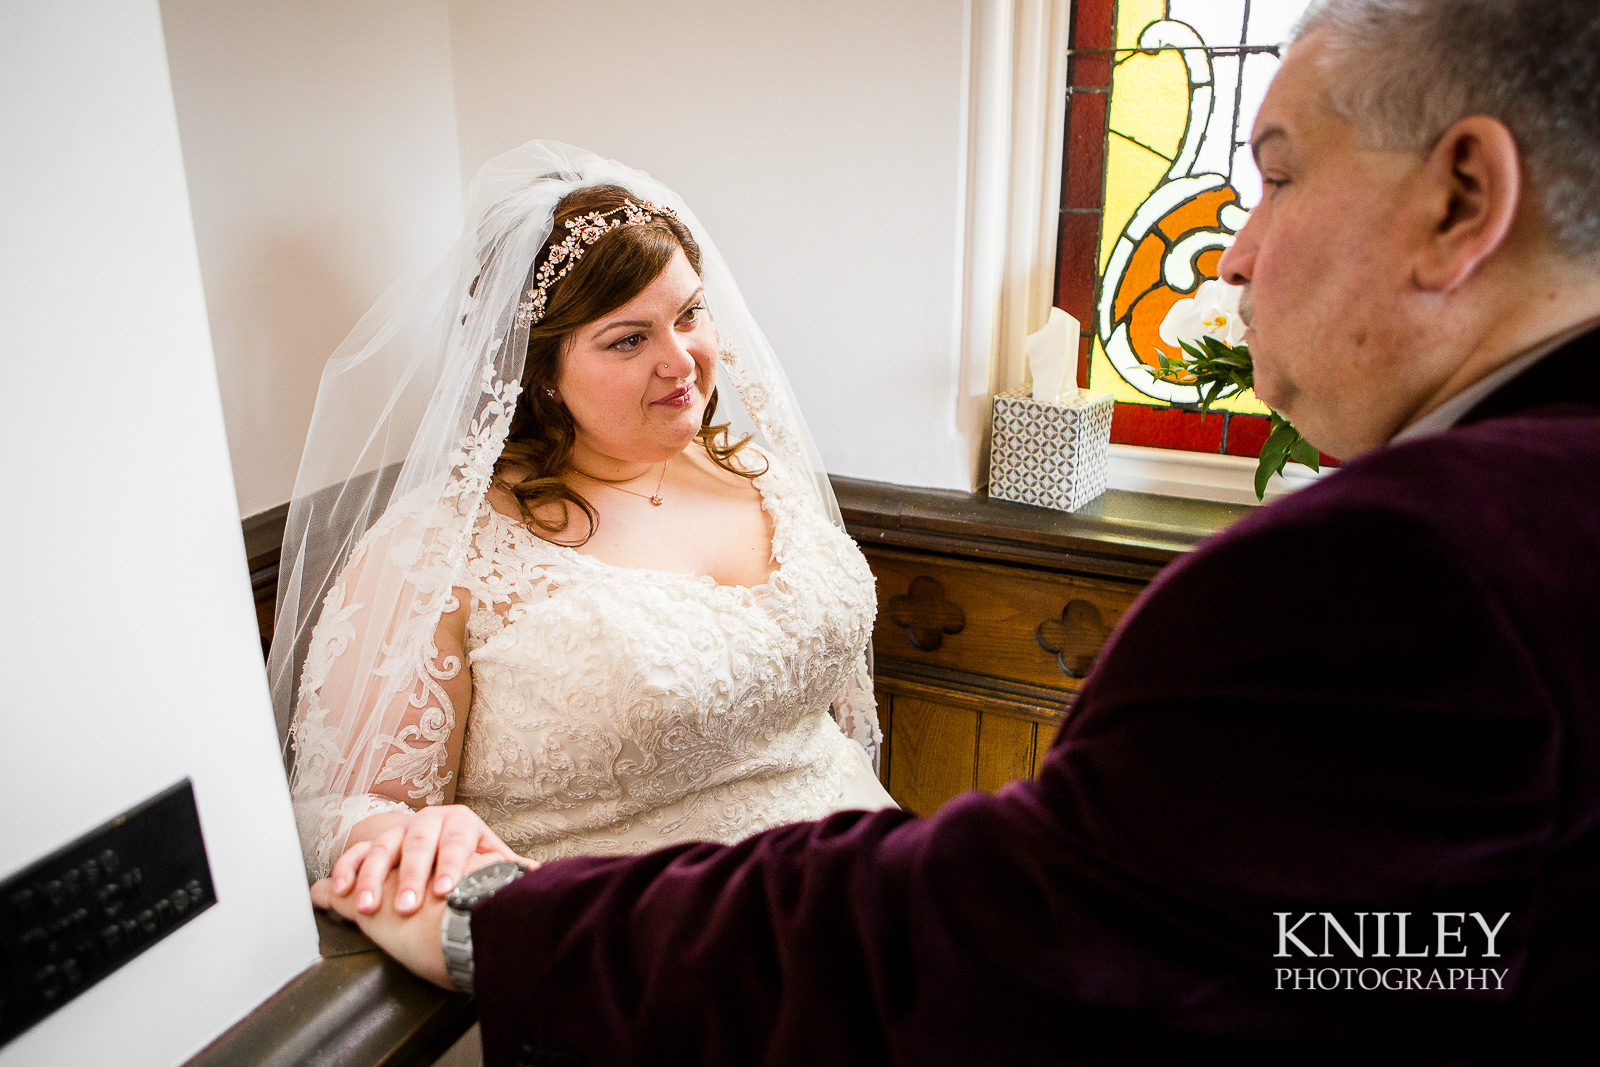 027 - Westminster Chapel - Rochester NY wedding photo - Kniley Photography.jpg